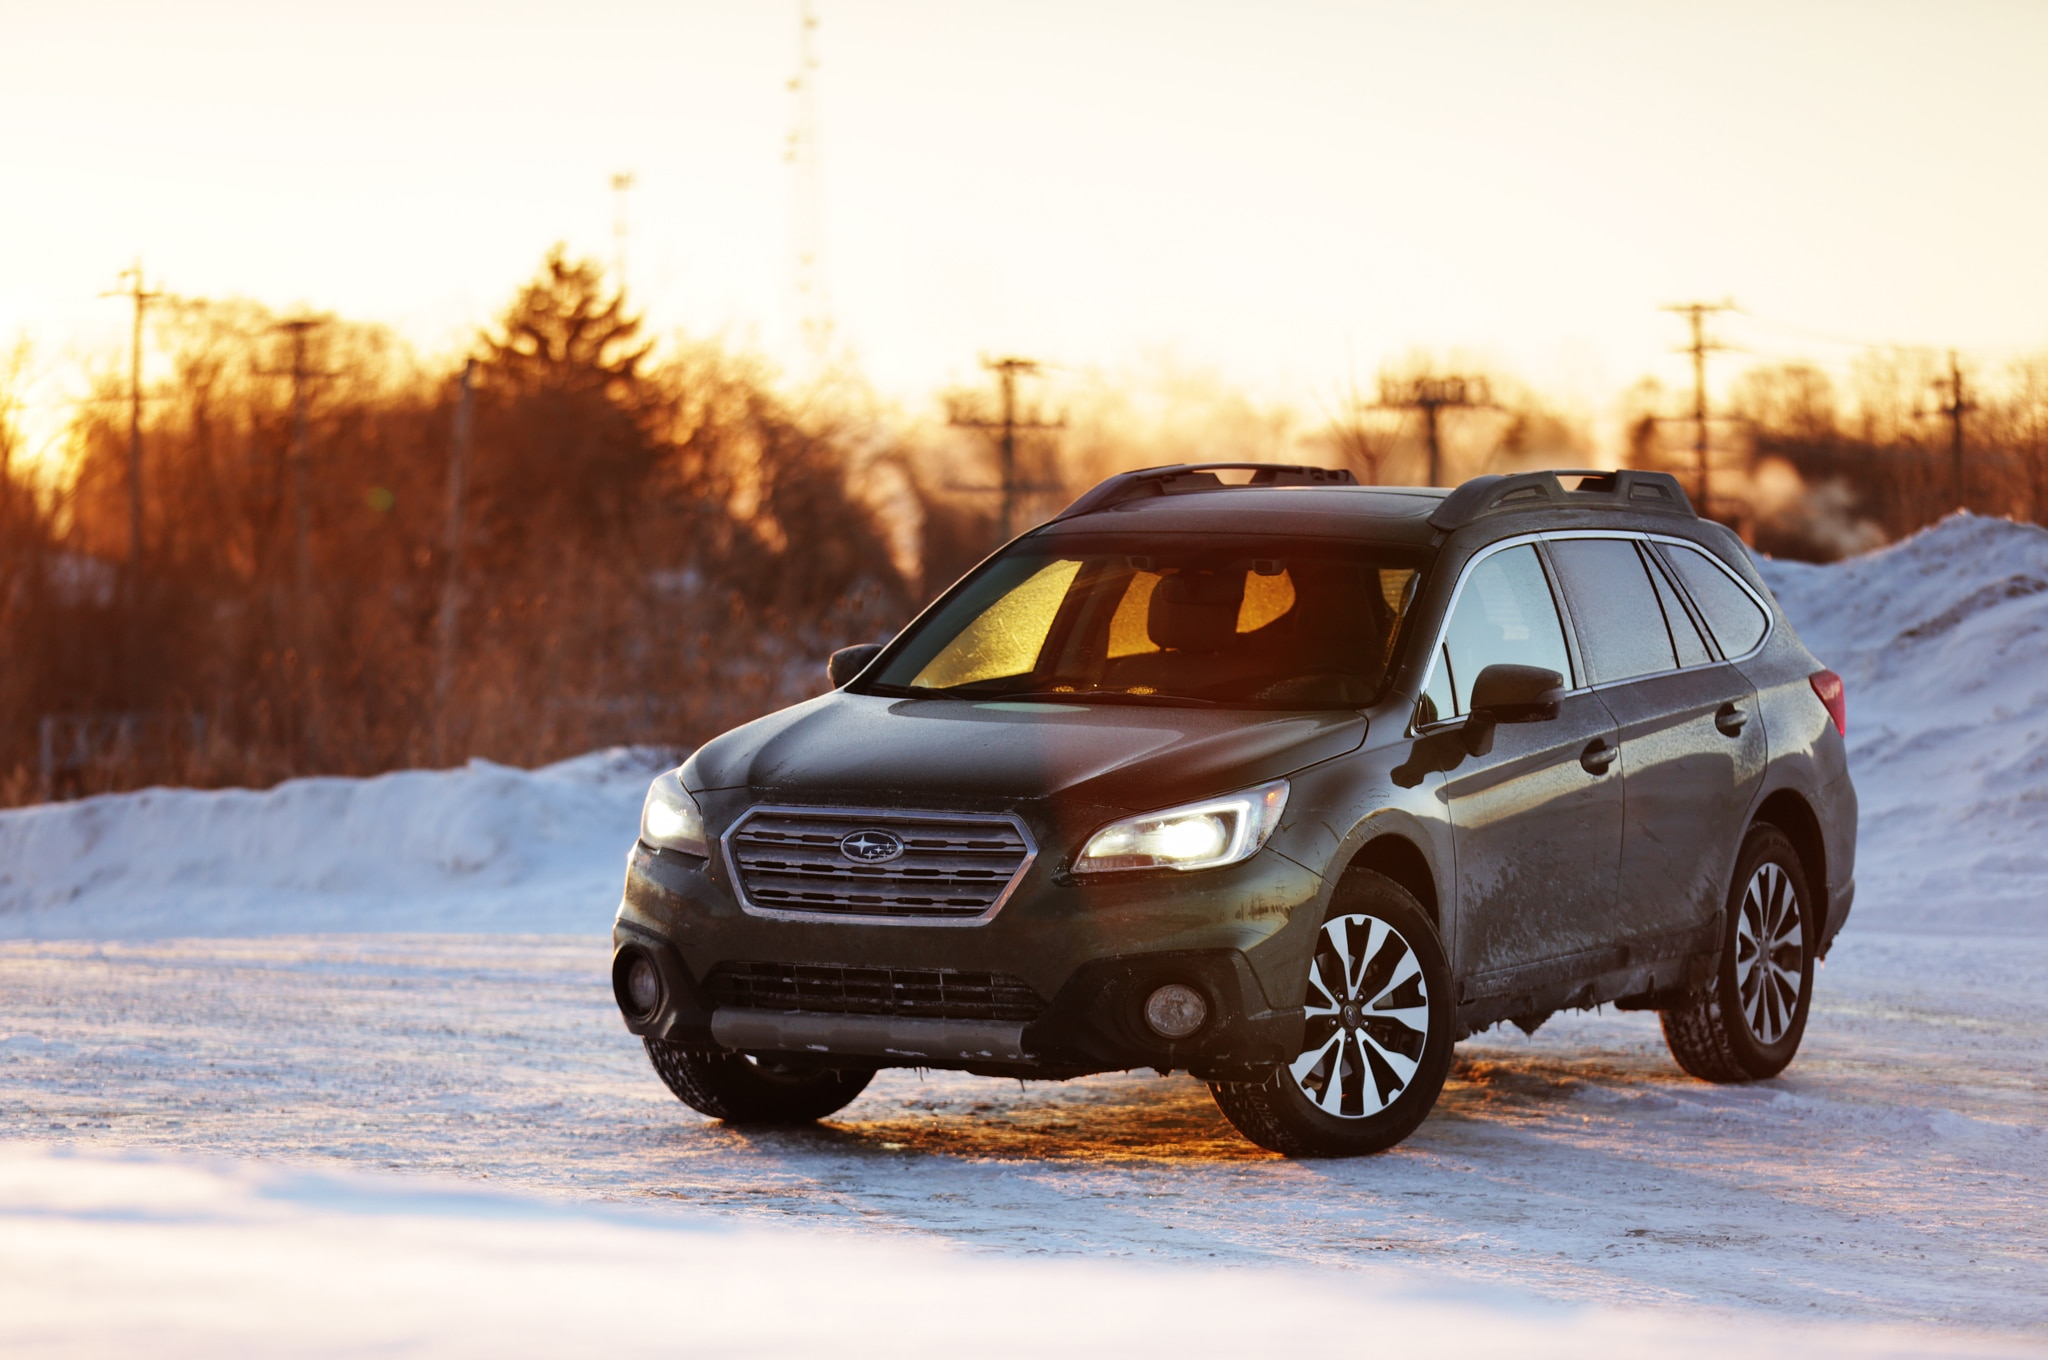 2015 Subaru Outback 36R Limited Front Three Quarter 031